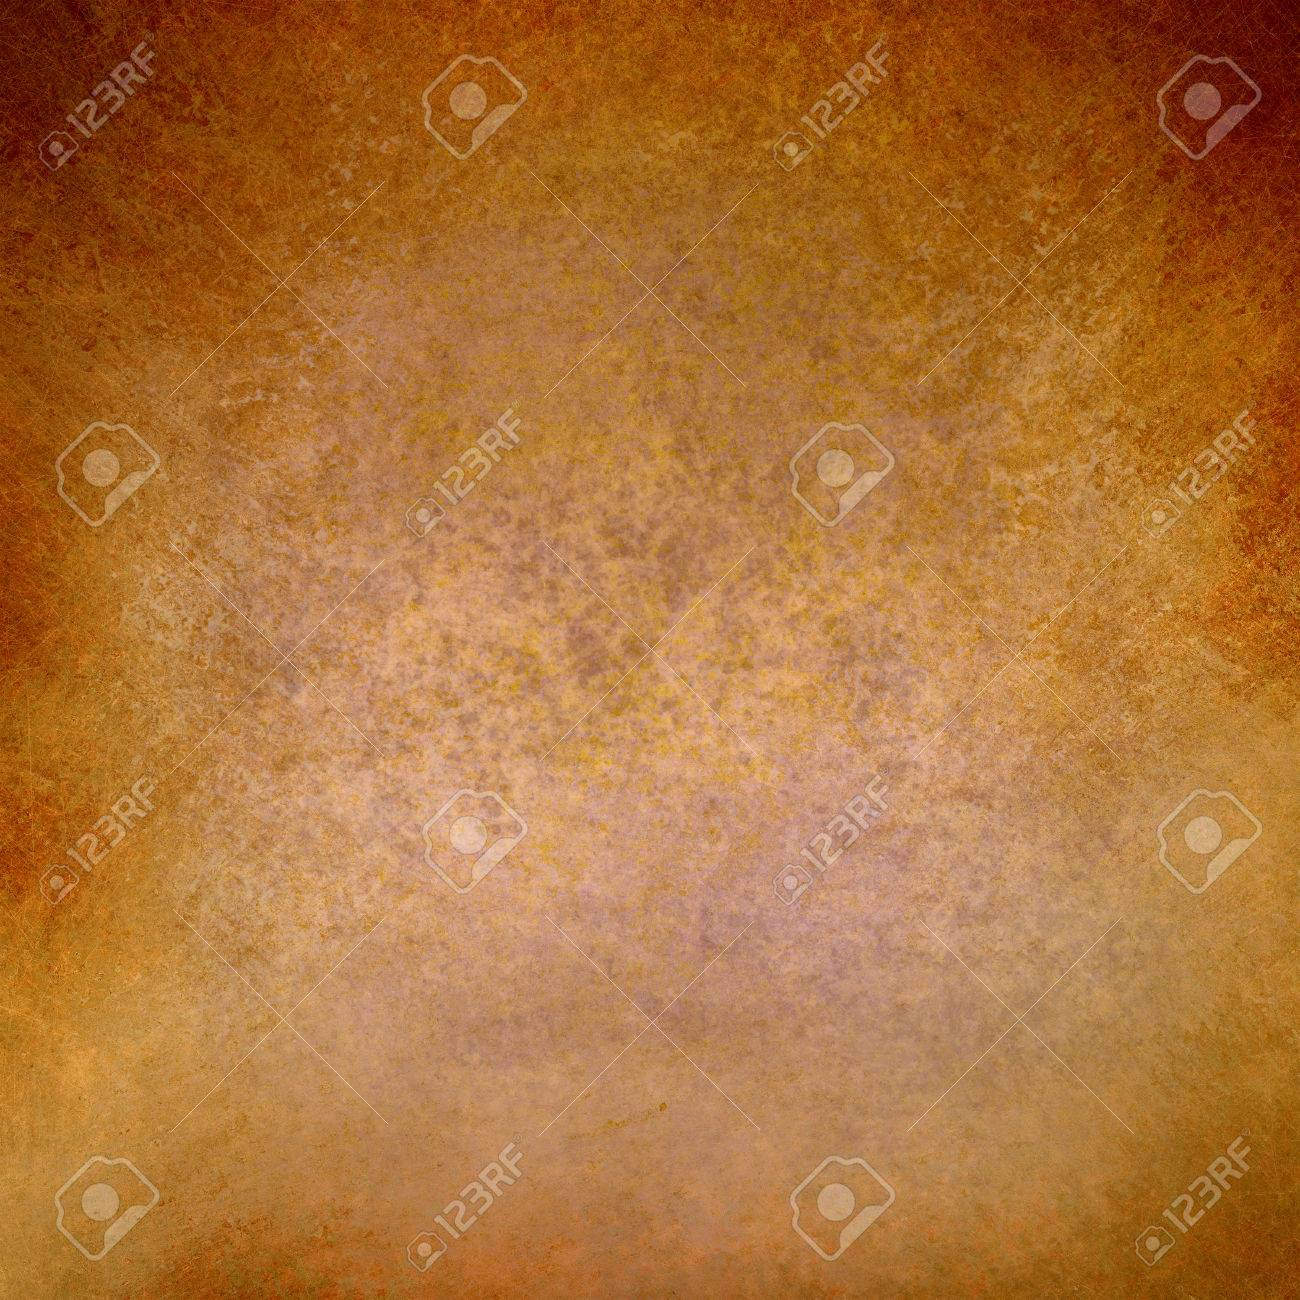 Copper Background Texture Layout Old Aged Background Wall Painted